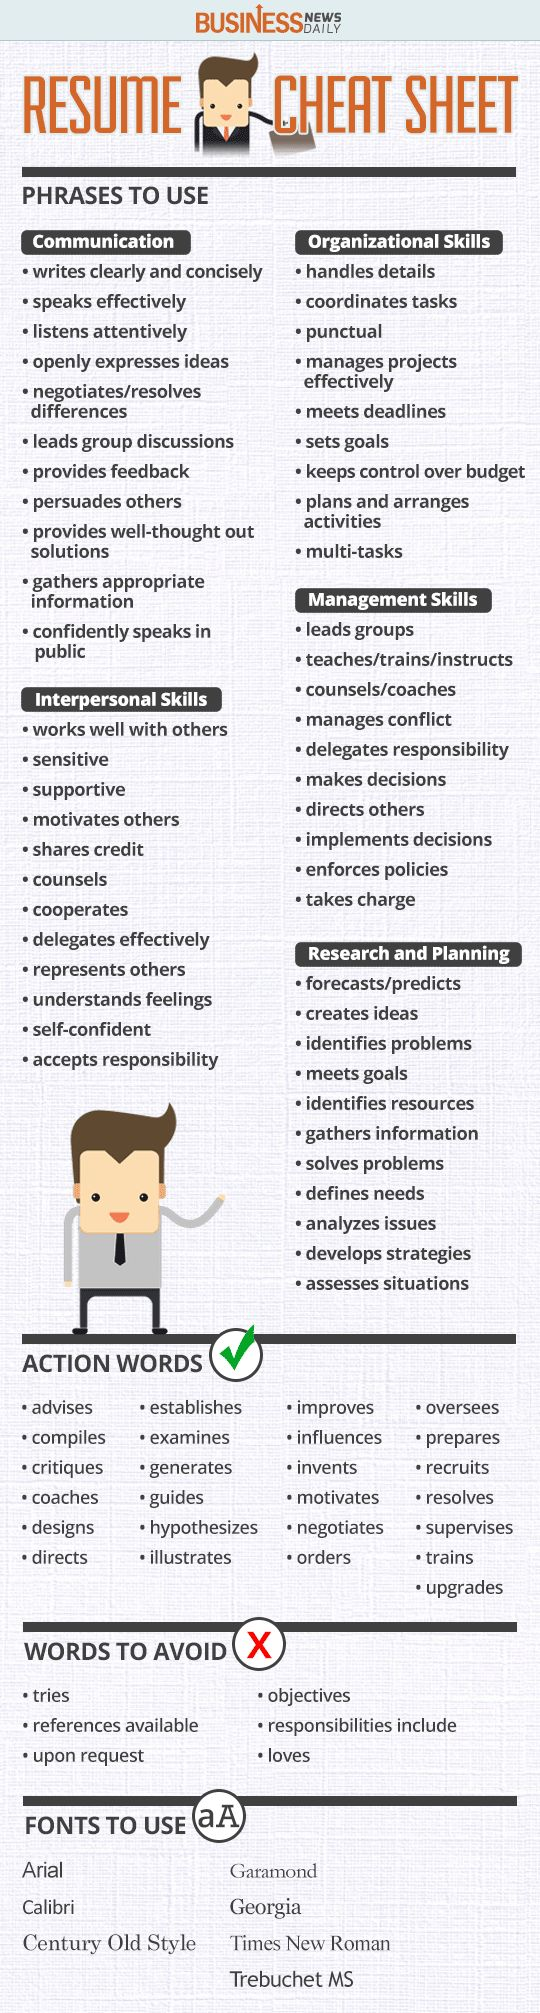 Opposenewapstandardsus  Outstanding  Ideas About Resume On Pinterest  Cv Format Resume Cv And  With Fair Resume Cheat Sheet Infographic Andrews Almost Done With A Complete Unit On Employment Which With Beauteous Cook Resume Examples Also Drafter Resume In Addition High School Resume For Jobs And Functional Resume Vs Chronological As Well As Should You Include References On Resume Additionally Verbs Resume From Pinterestcom With Opposenewapstandardsus  Fair  Ideas About Resume On Pinterest  Cv Format Resume Cv And  With Beauteous Resume Cheat Sheet Infographic Andrews Almost Done With A Complete Unit On Employment Which And Outstanding Cook Resume Examples Also Drafter Resume In Addition High School Resume For Jobs From Pinterestcom